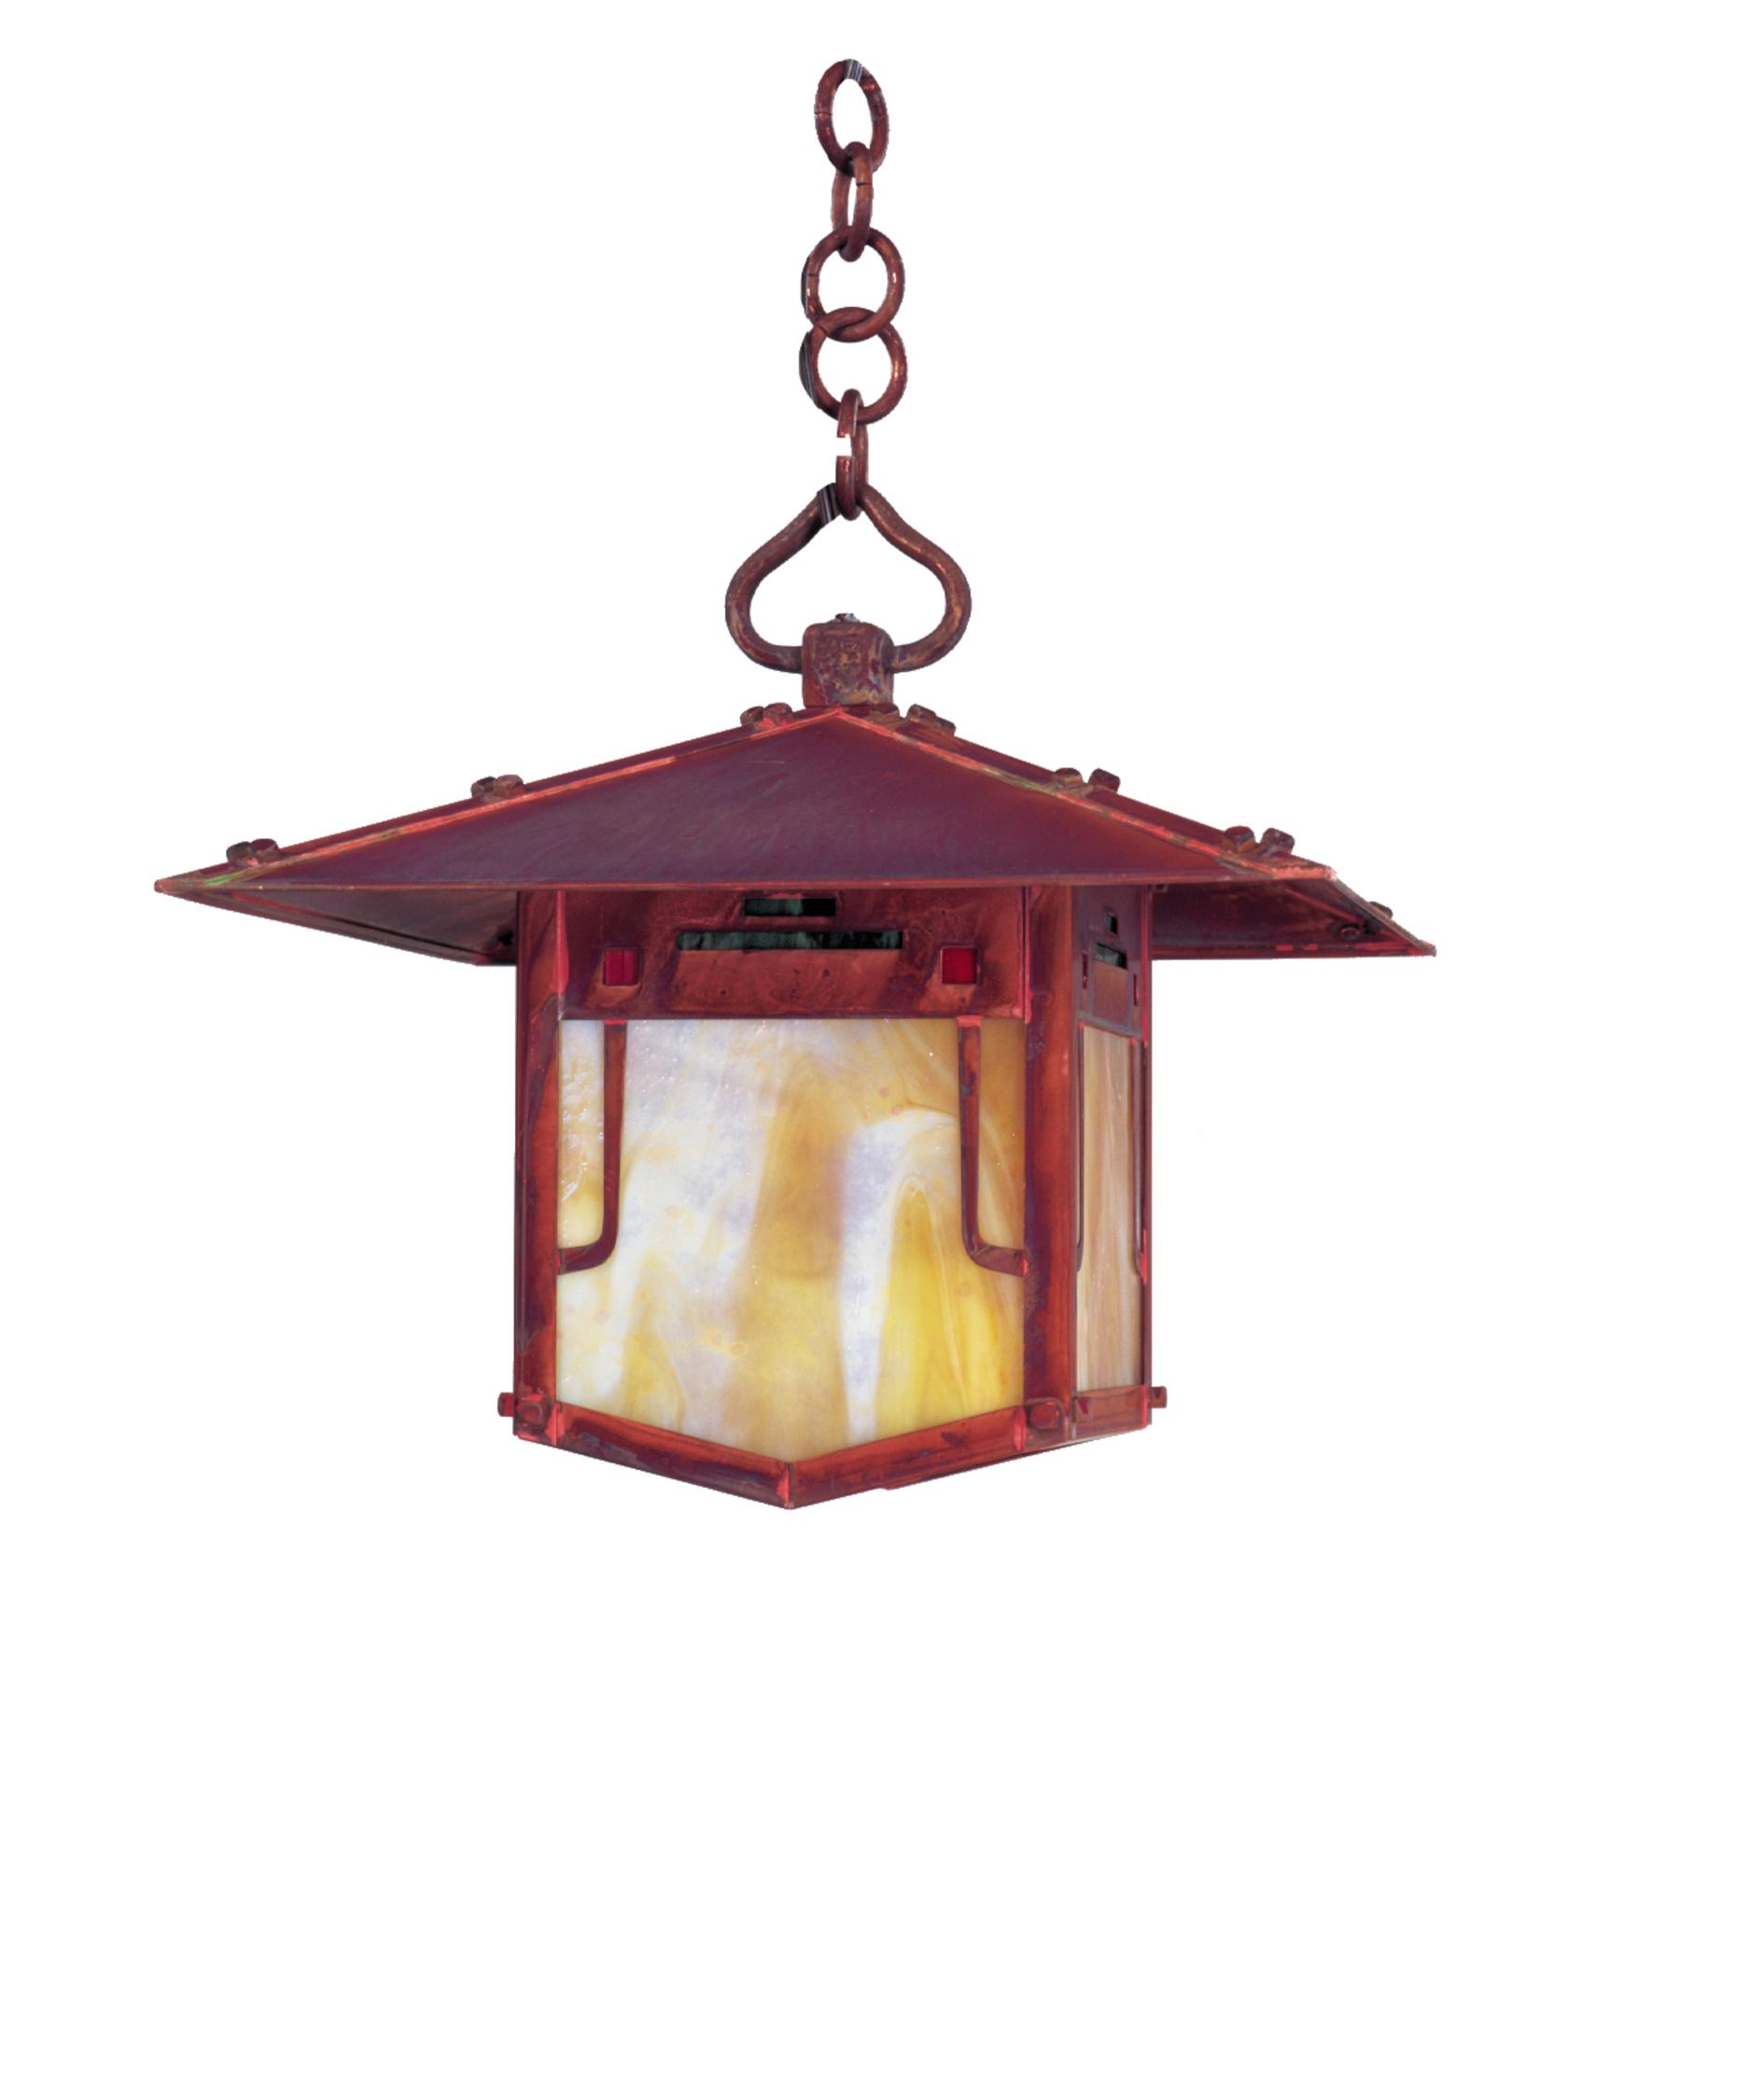 Remarkable, this Asian style light